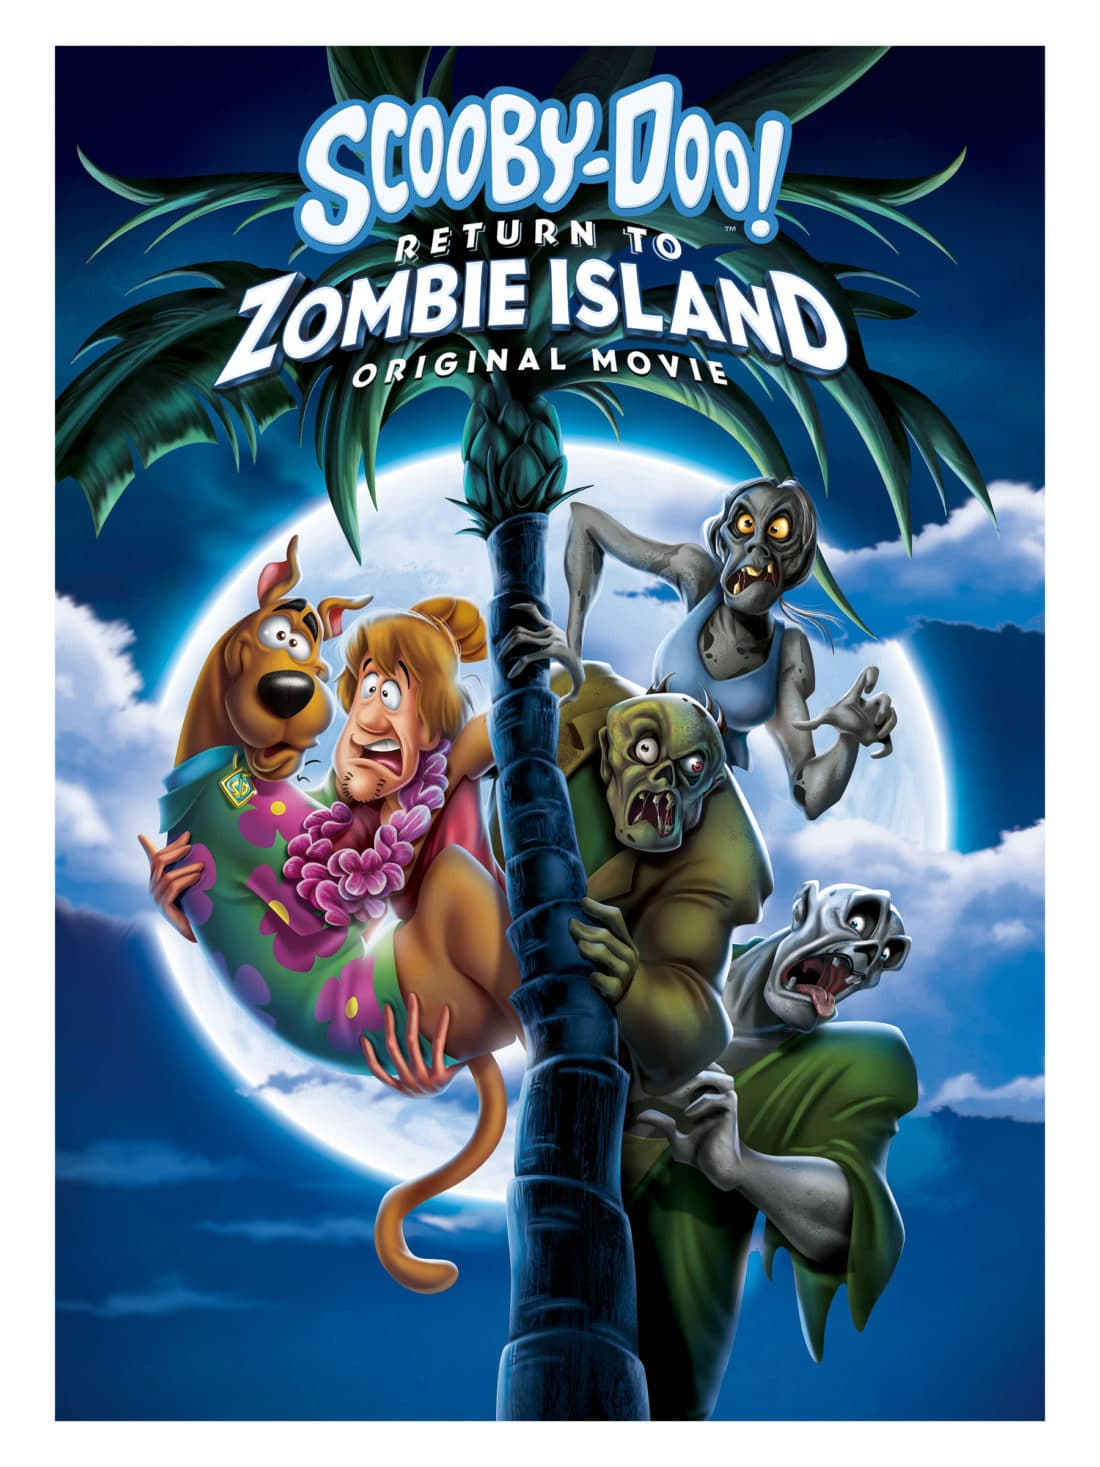 Scooby Doo Return To Zombie Island Cover. Pack your Scooby Snacks and join the Mystery Inc. gang as the teen sleuths embark on a wild and spooky vacation with zombies and cat people onScooby-Doo! Return to Zombie Island,an all-new, original film. Available on Digital and DVD October 1rst, 2019.